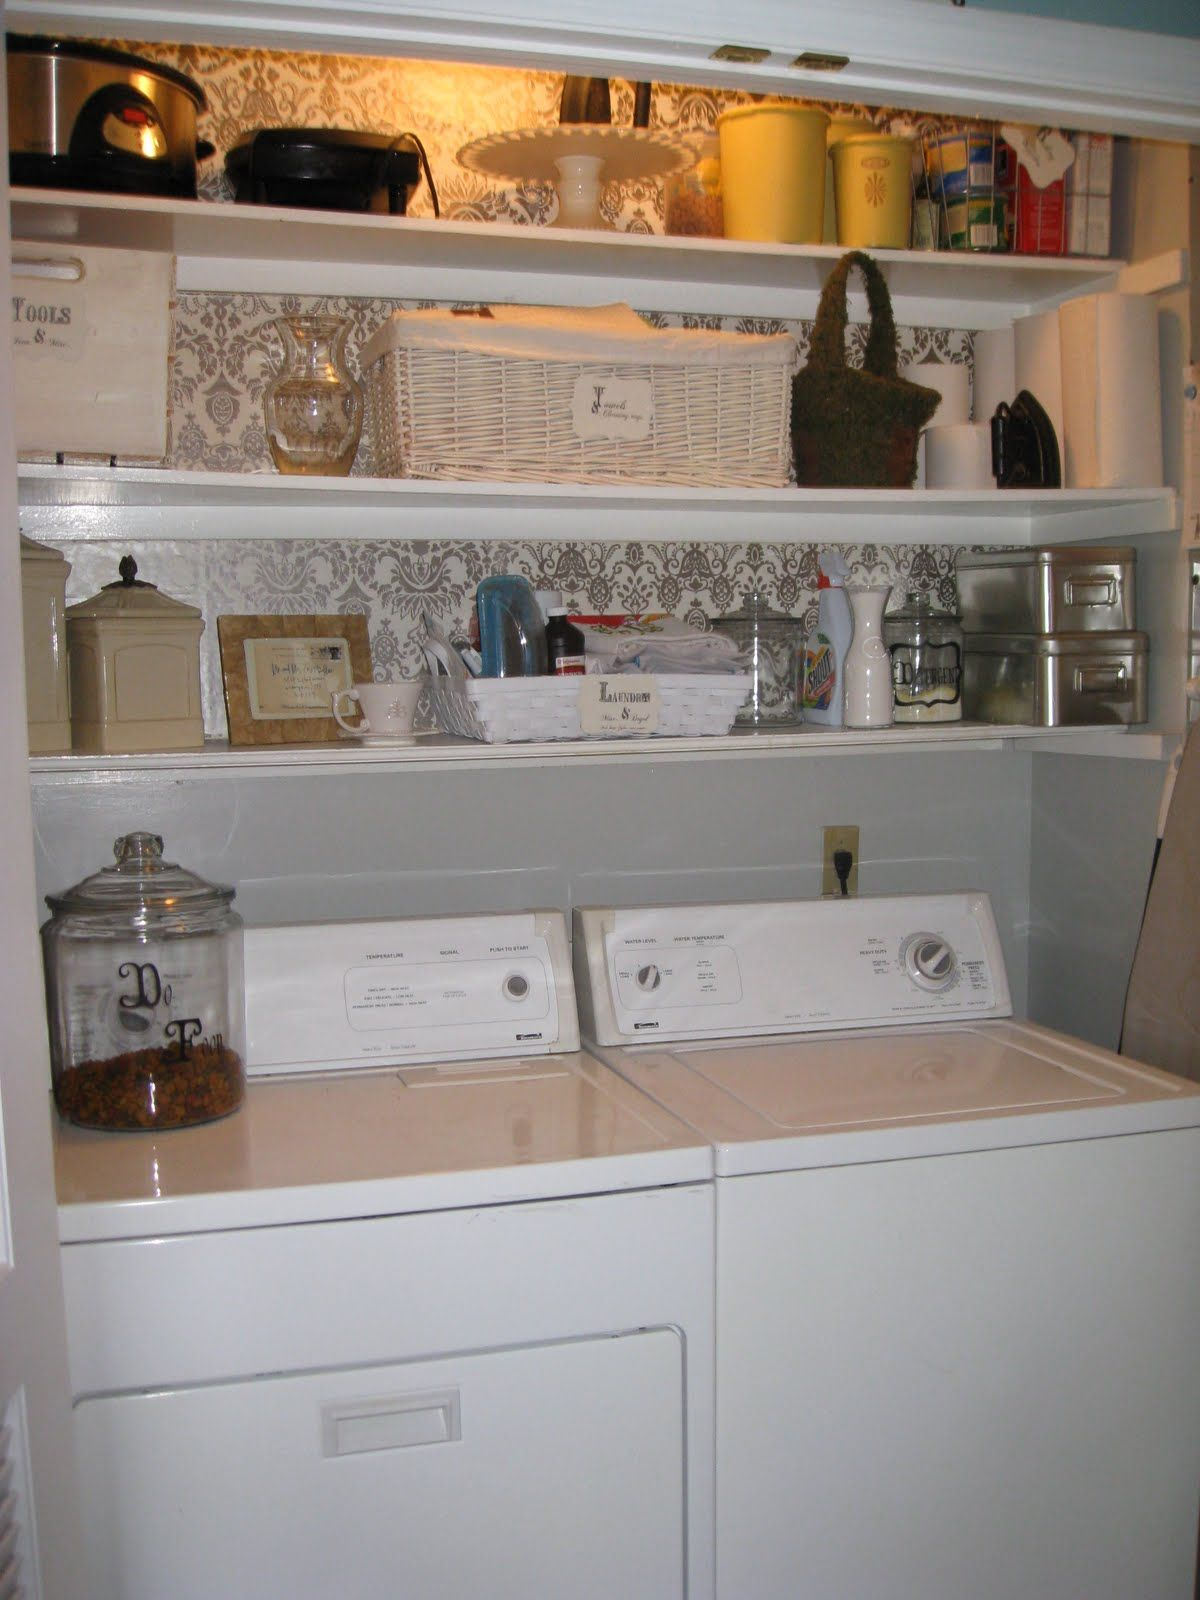 Adding Shelf Space To A Small Laundry Area Would Be Perfect For Us! Great  Place To Keep Our Extra TP And Paper Towels And All The Stuff That Gets  Shoved In ...